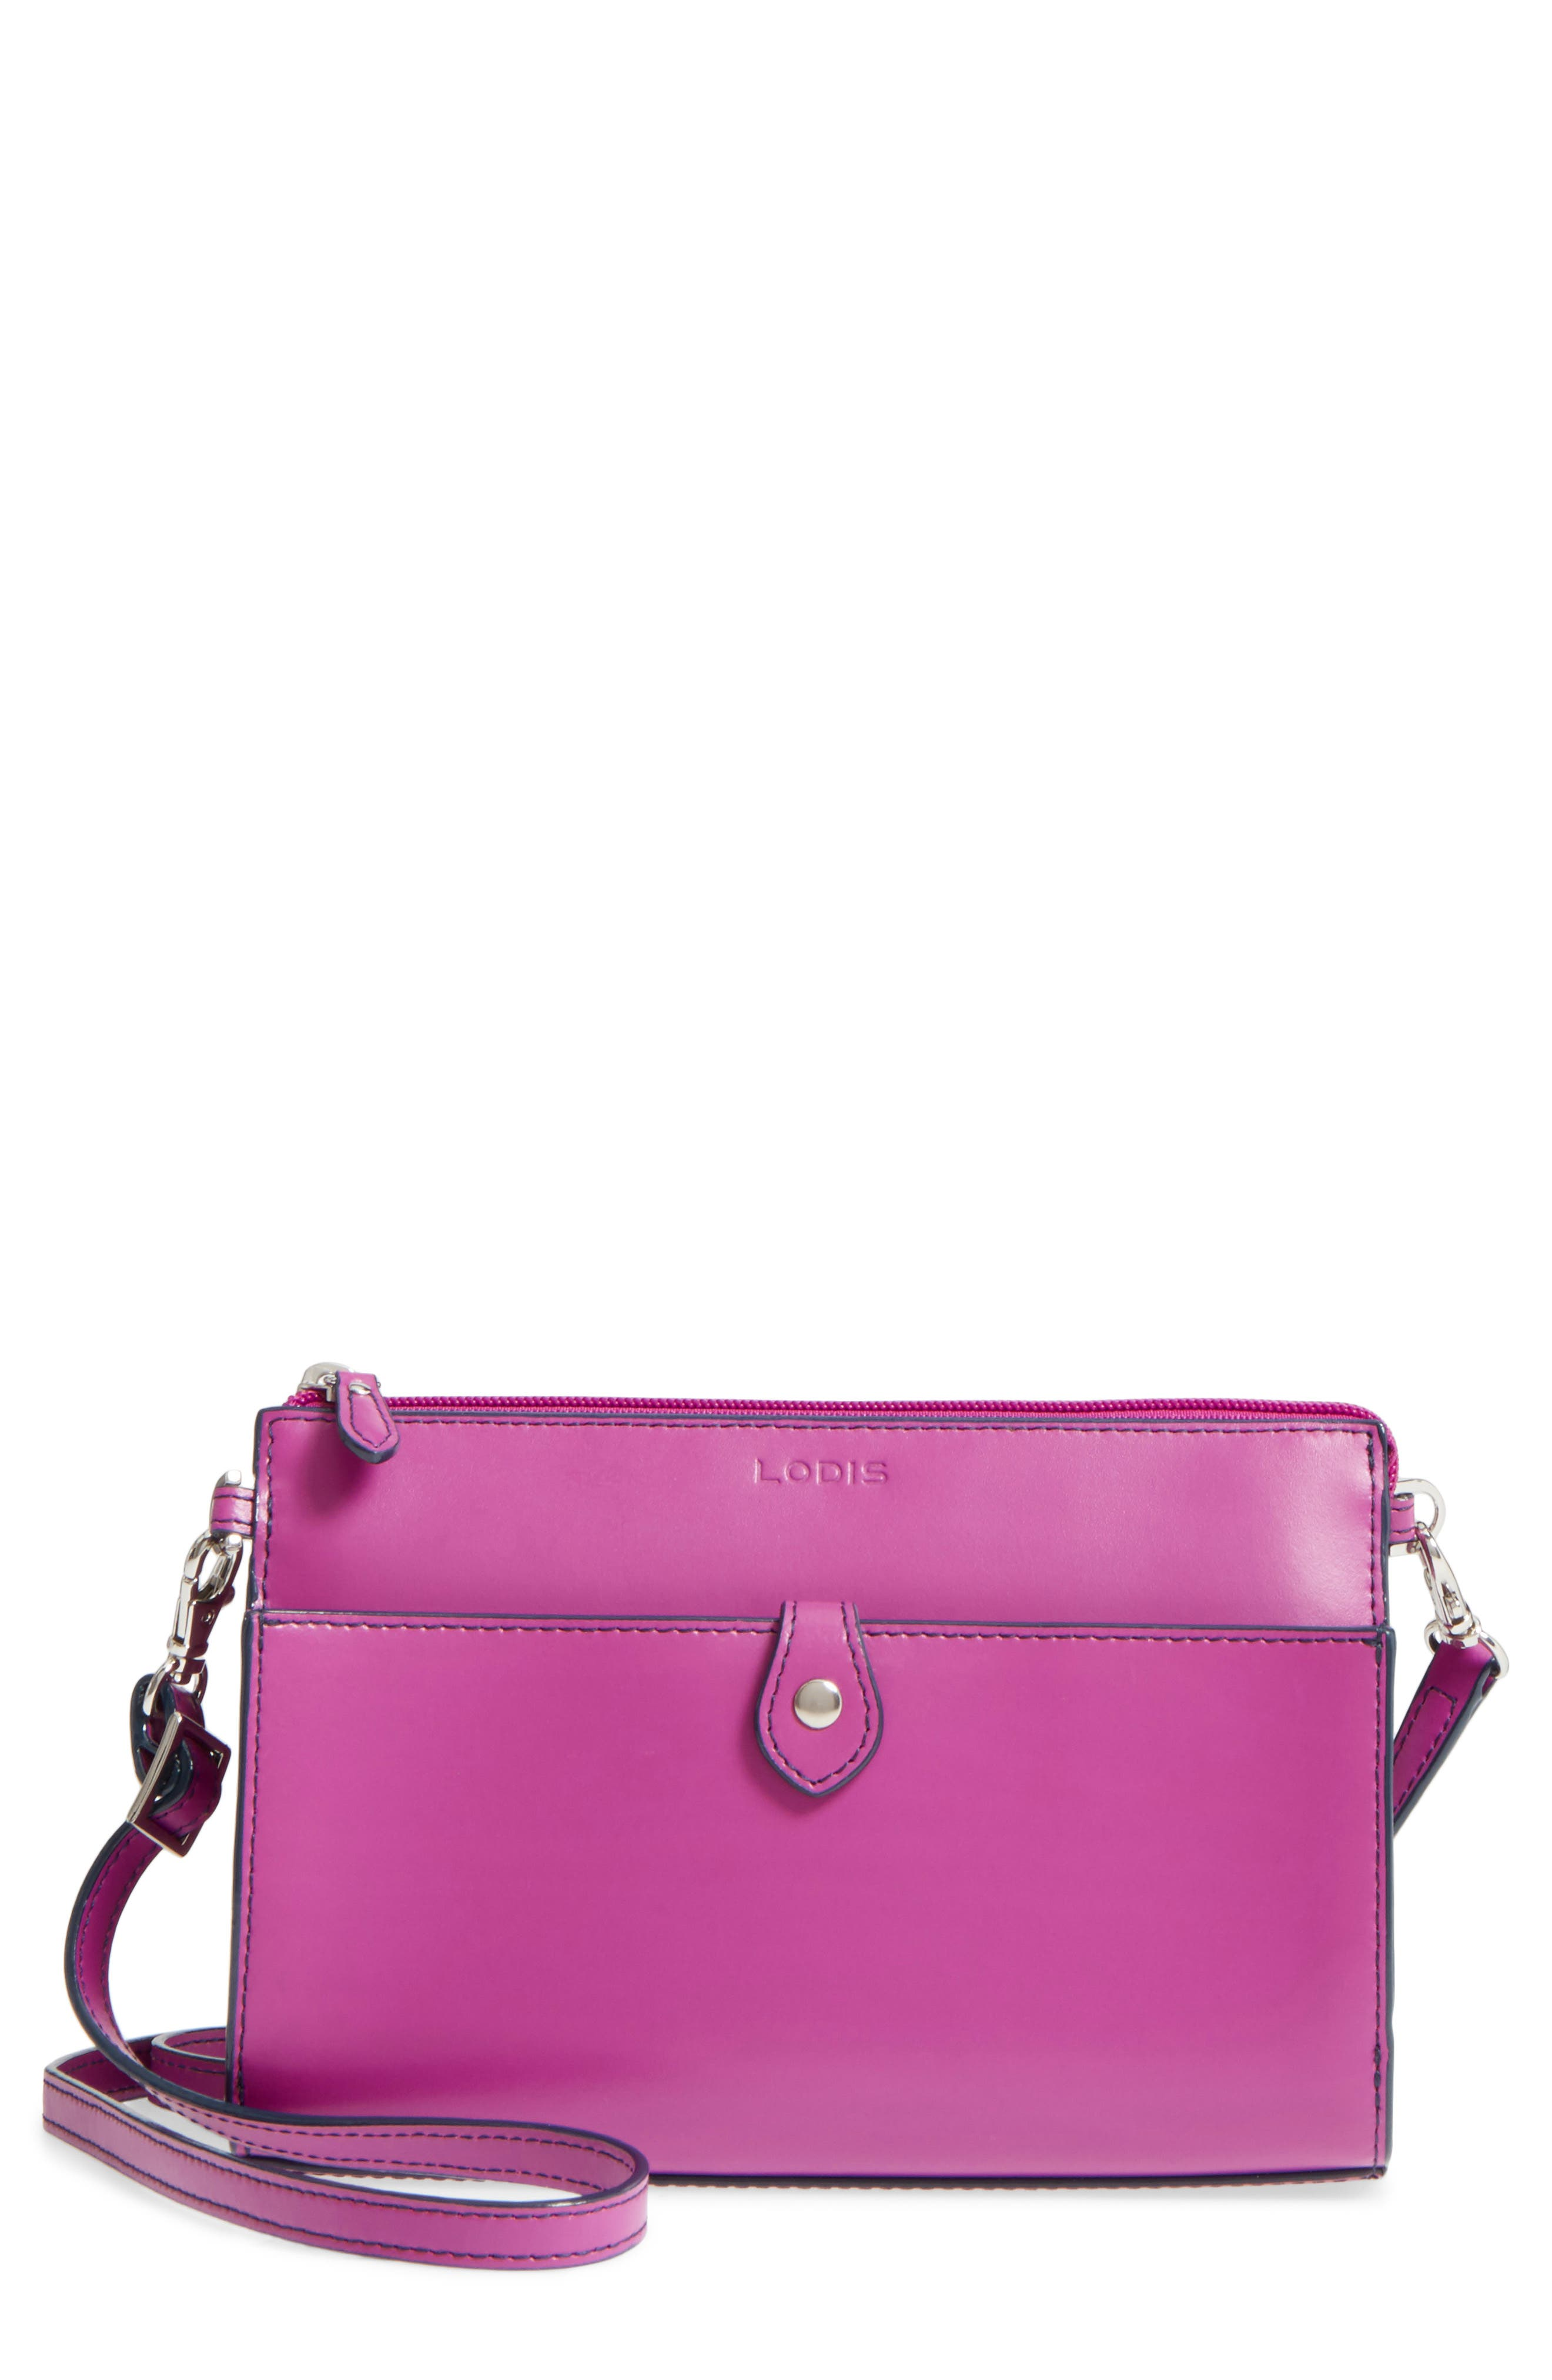 Alternate Image 1 Selected - LODIS Audrey Under Lock & Key Vicky Convertible Leather Crossbody Bag